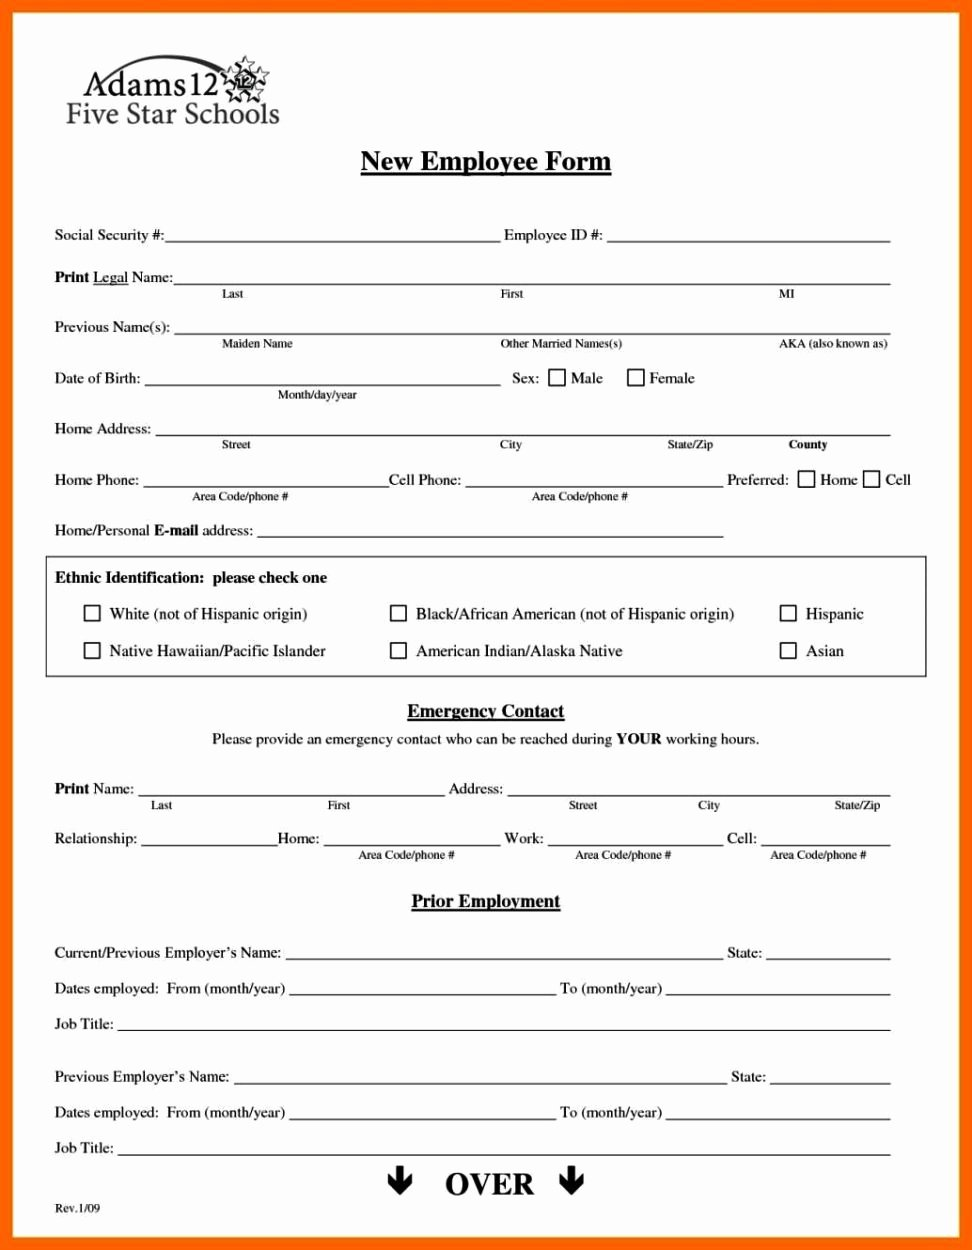 New Hire form Template Elegant New Hire forms Template Sampletemplatess Sampletemplatess